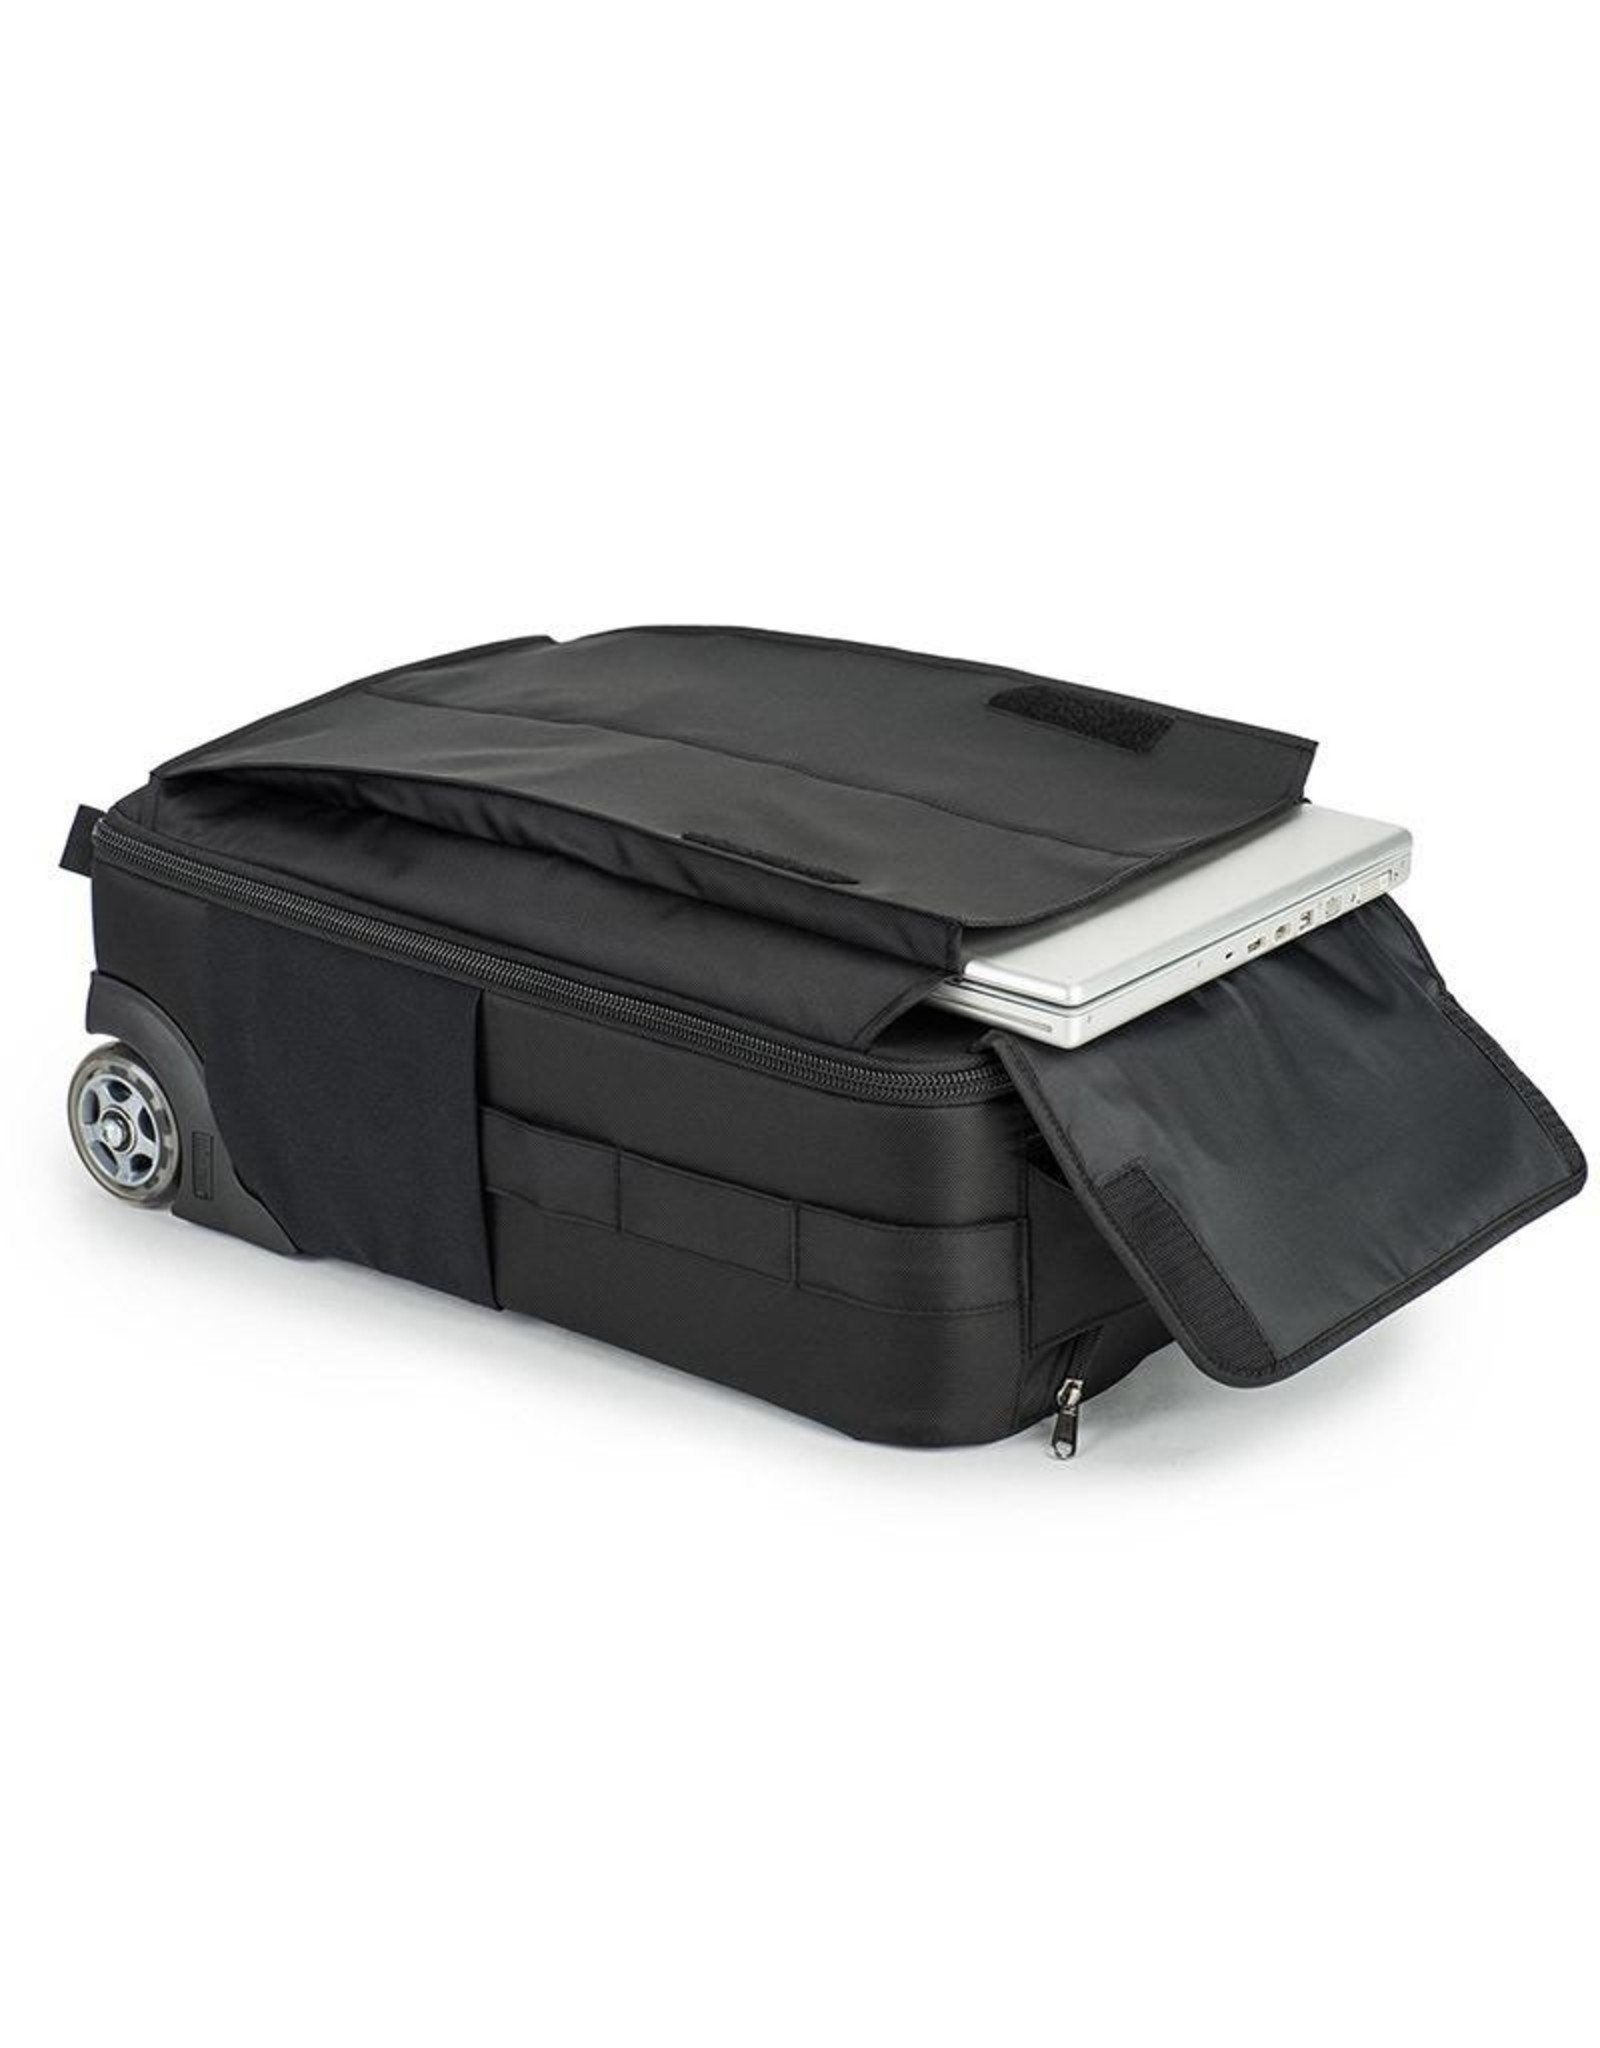 Think Tank Think Tank  Airport Advantage™, Black Rolling luggage - lightweight and meets most international, commuter jet and regular jet carry-on size